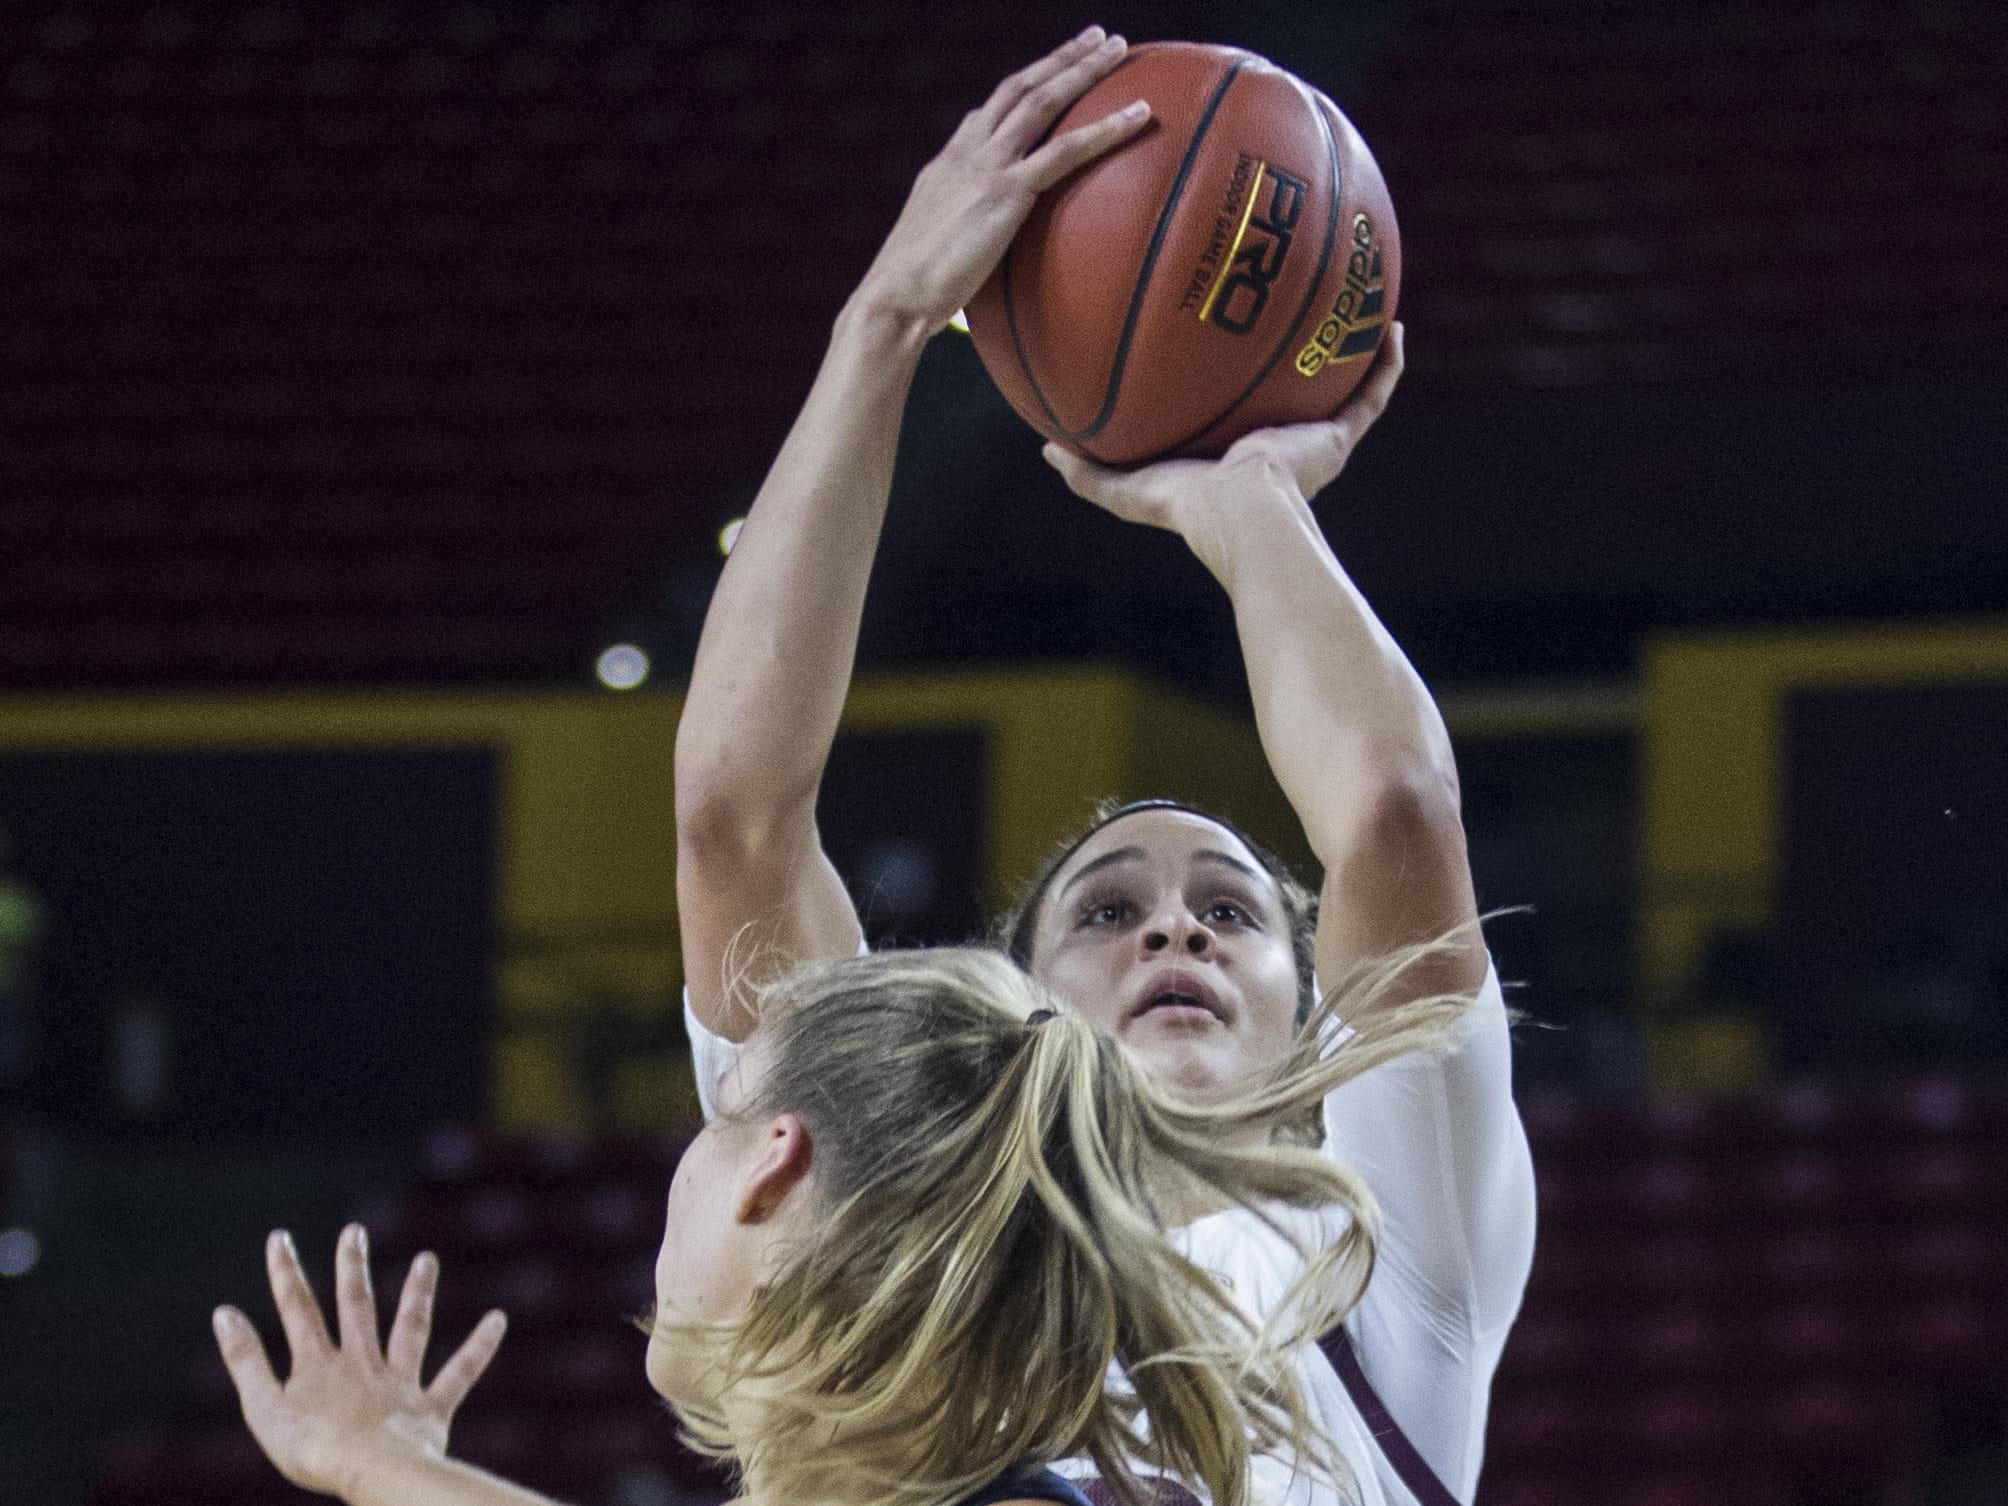 Arizona State's Kianna Ibis puts up a shot against Fresno State's Genna Ogier during the first half of their game in Tempe, Thursday, Dec. 20, 2018.